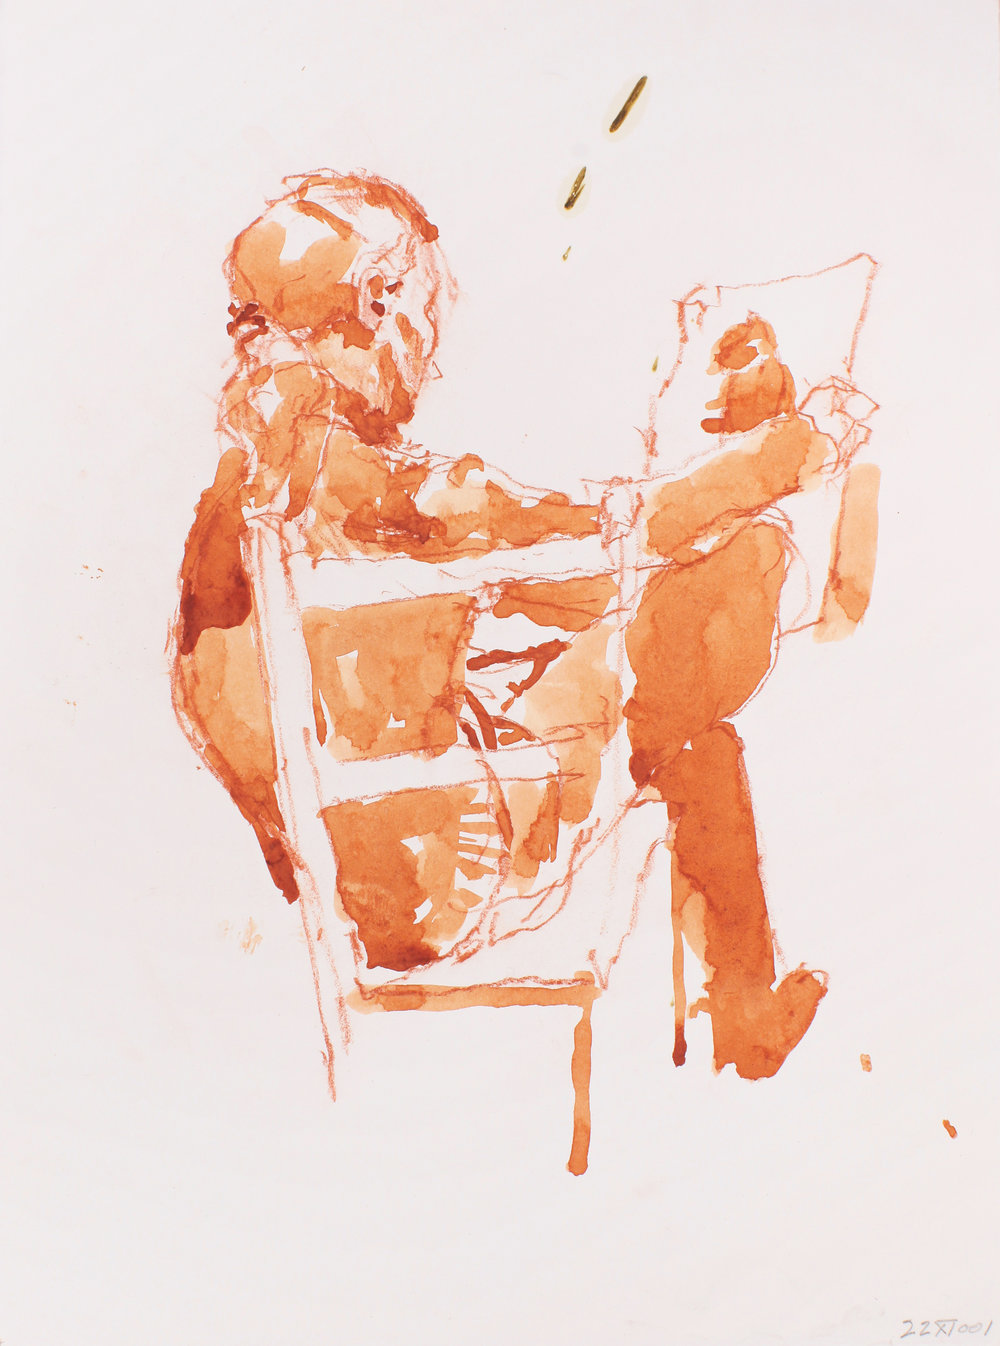 2001_Seated_Woman_Holding_Drawing_red_conte_and_watercolour_on_paper_15x11in_38x28cm_WPF135.jpg